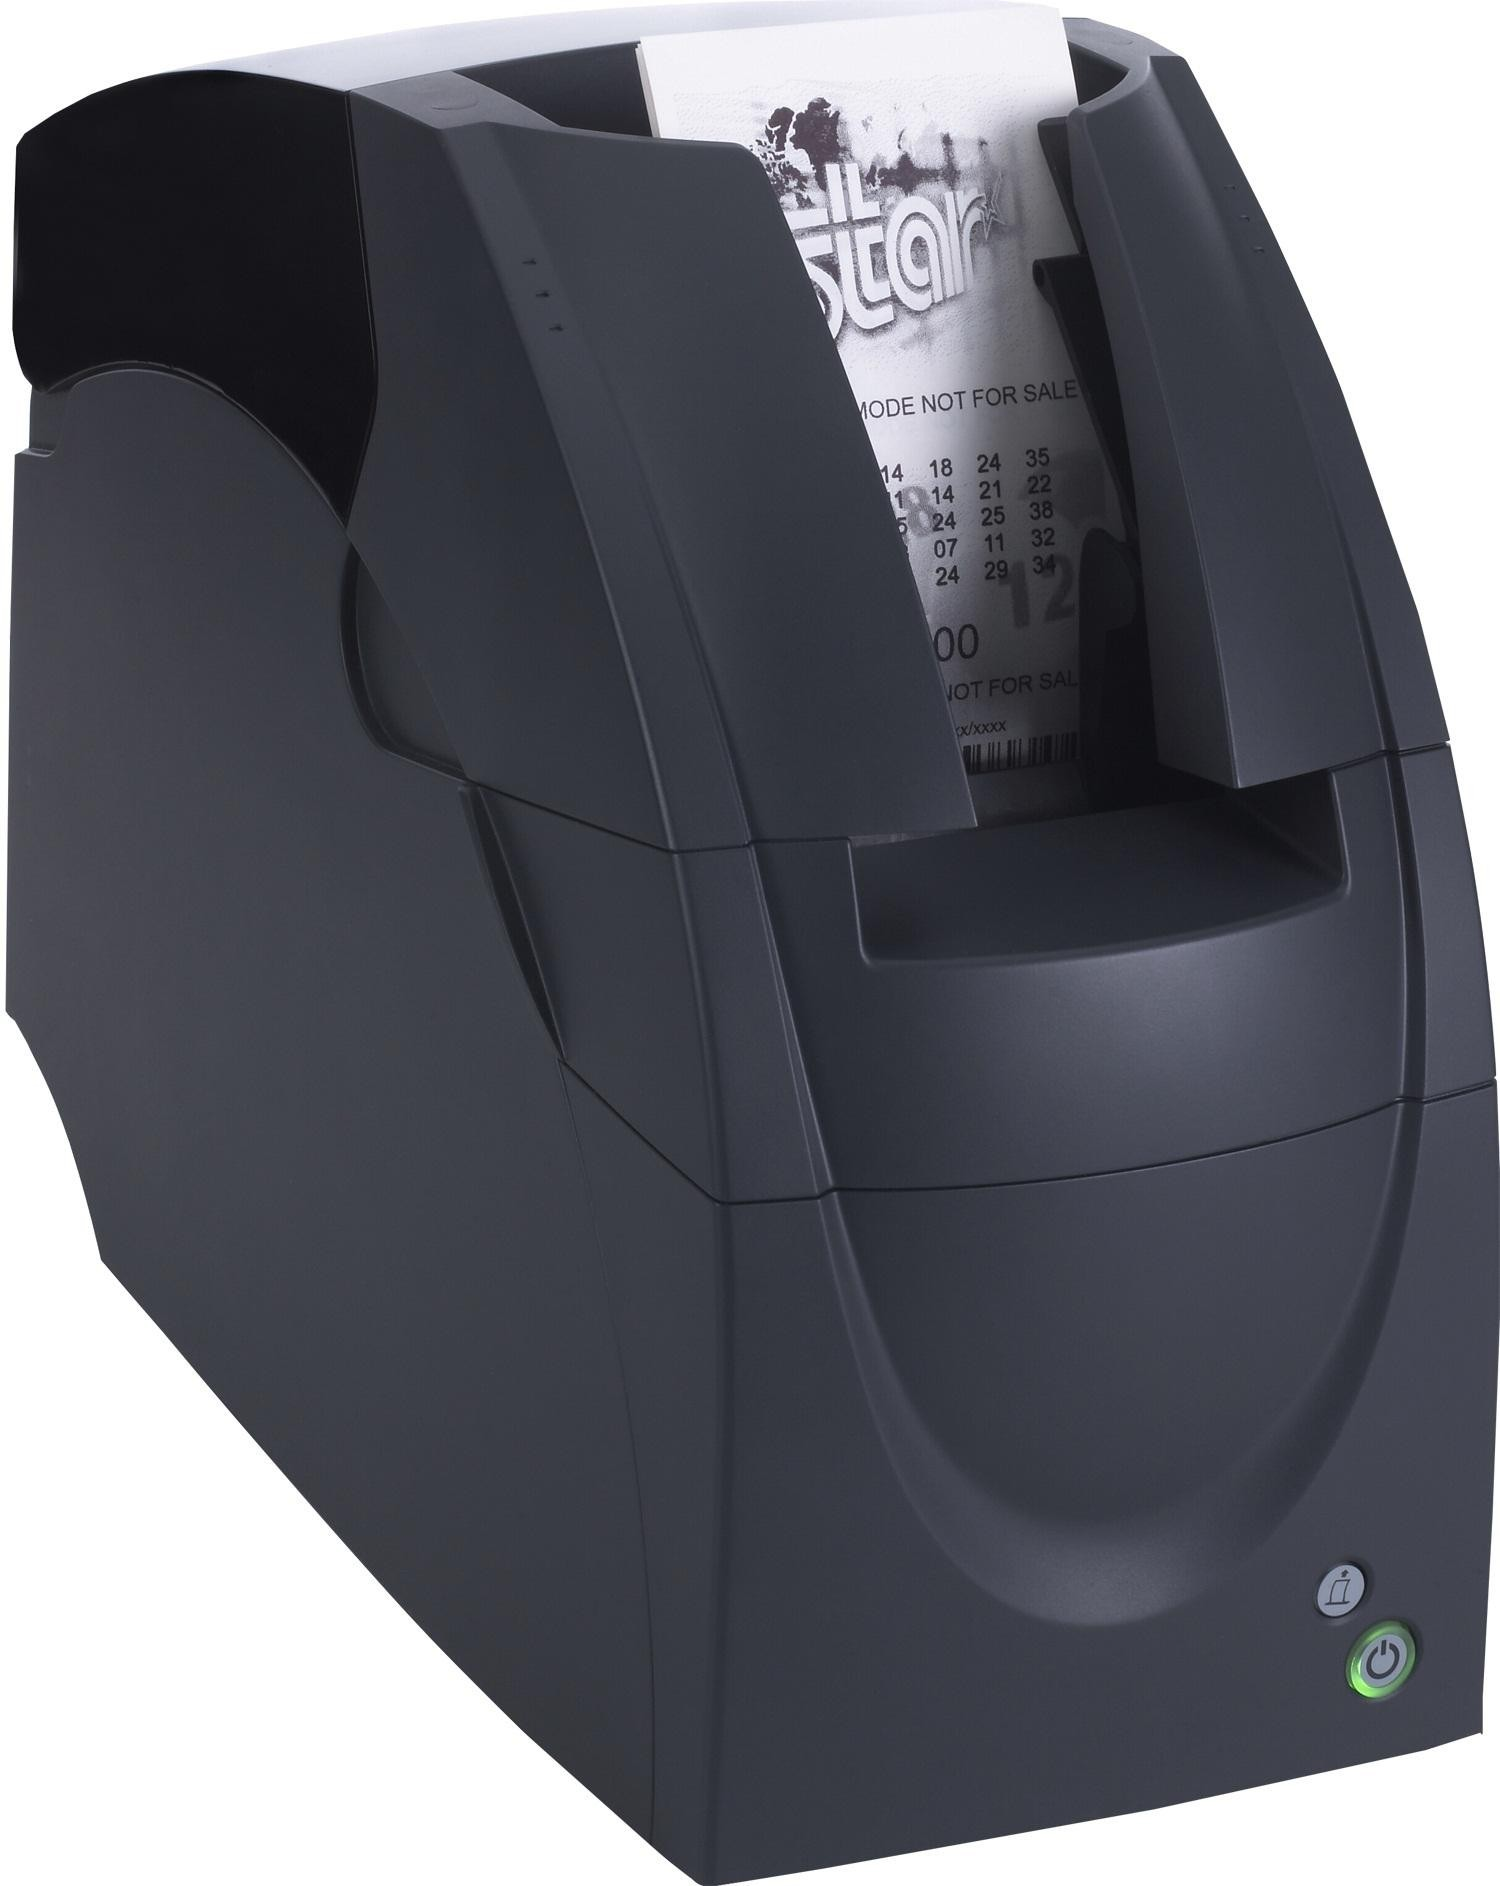 Star Micronics TSP-L10 Receipt Printer